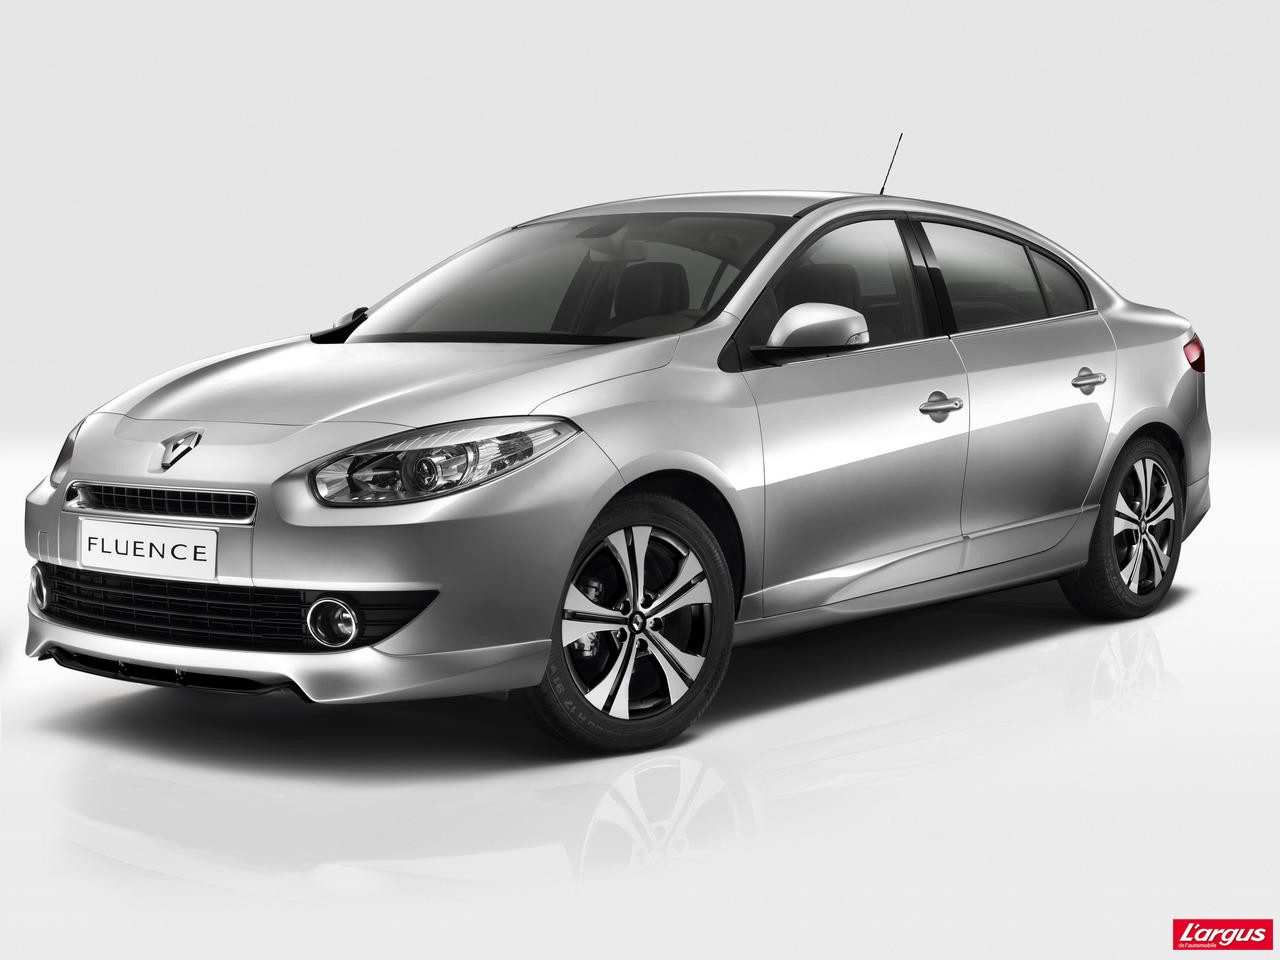 renault fluence s rie sp ciale black edition photo 1 l 39 argus. Black Bedroom Furniture Sets. Home Design Ideas